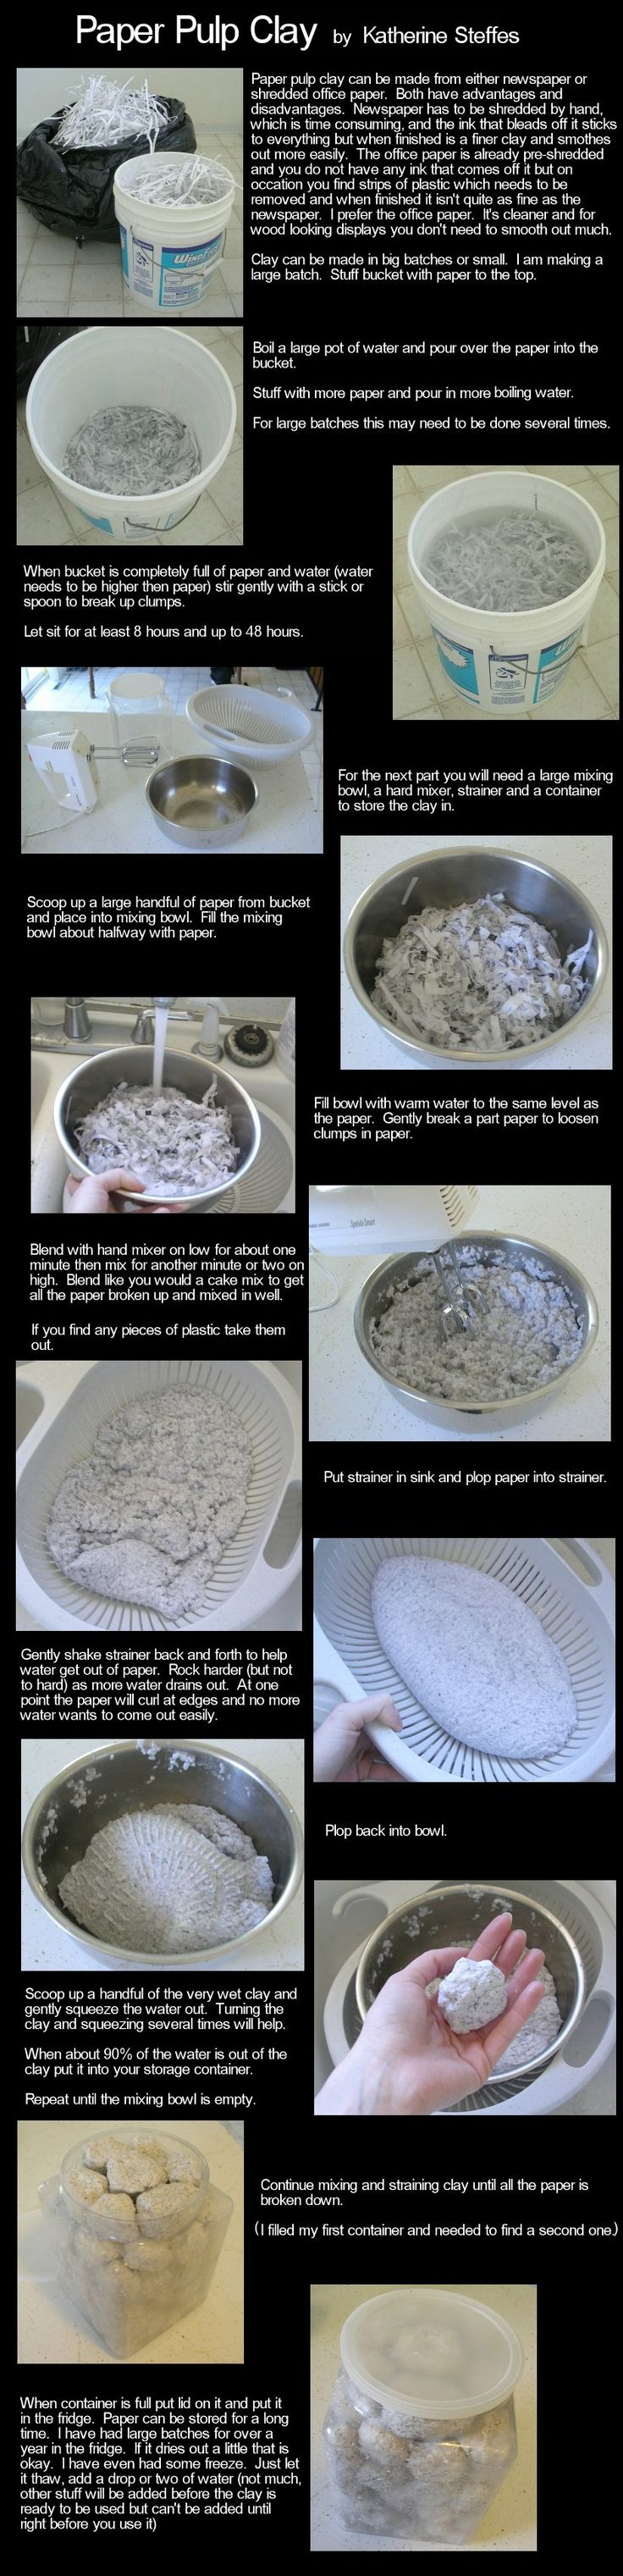 http://www.enchantedbeings.com/tutorials/paperpulpcombo1.jpg  paper clay using either office shred or newspaper shred and water. Has to soak for couple of days.